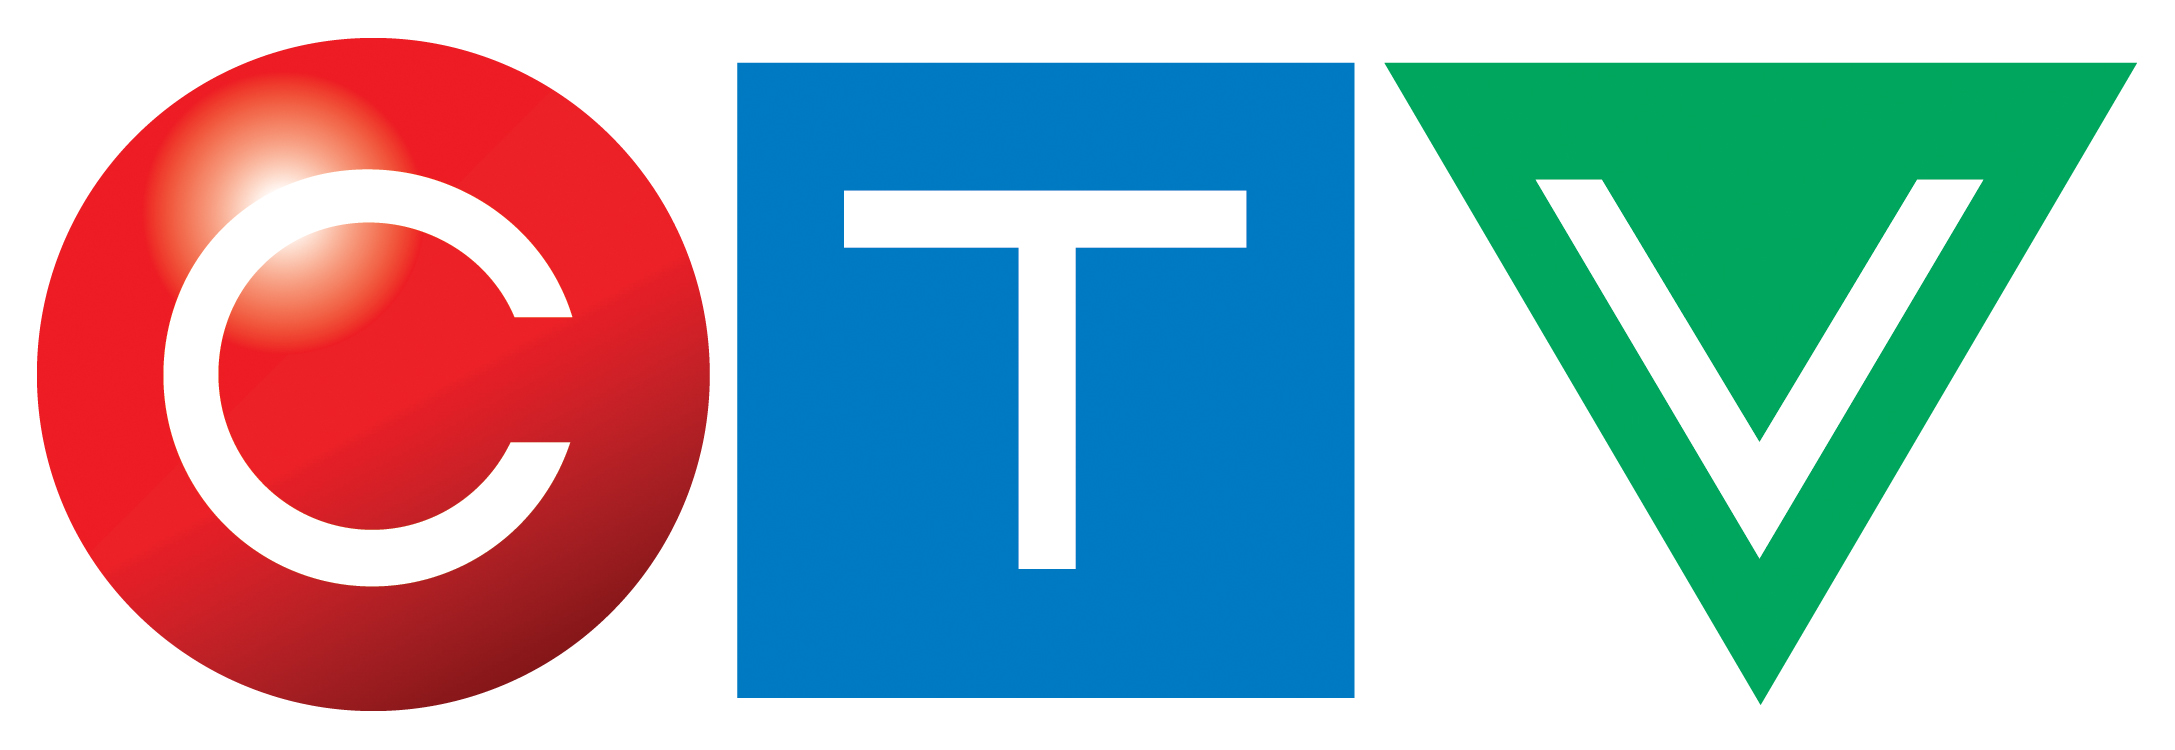 CTV Television Network - Logopedia, the logo and branding site